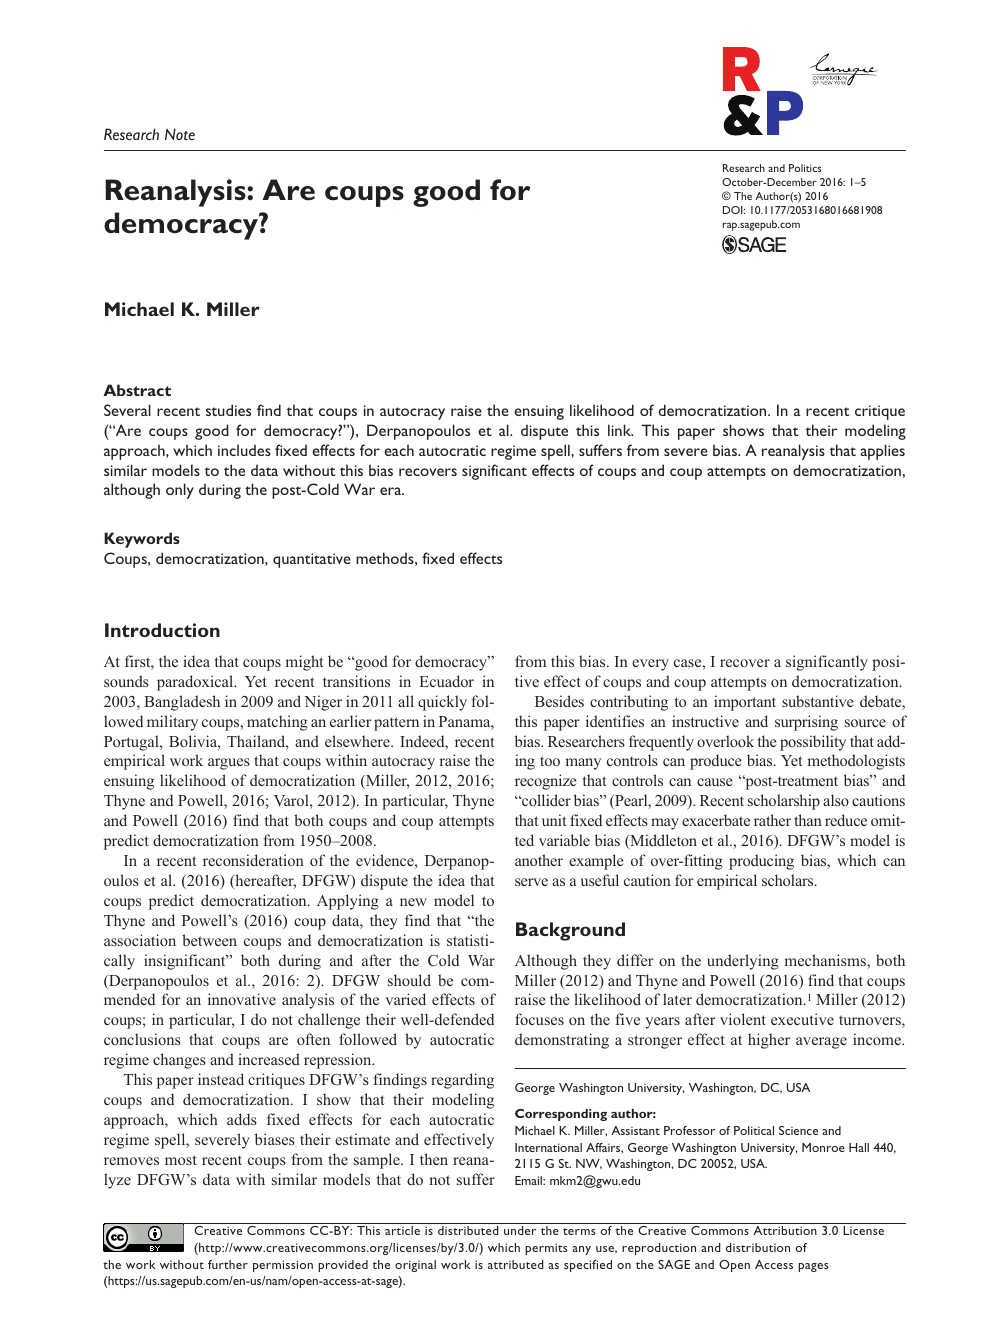 Reanalysis: Are coups good for democracy? – topic of